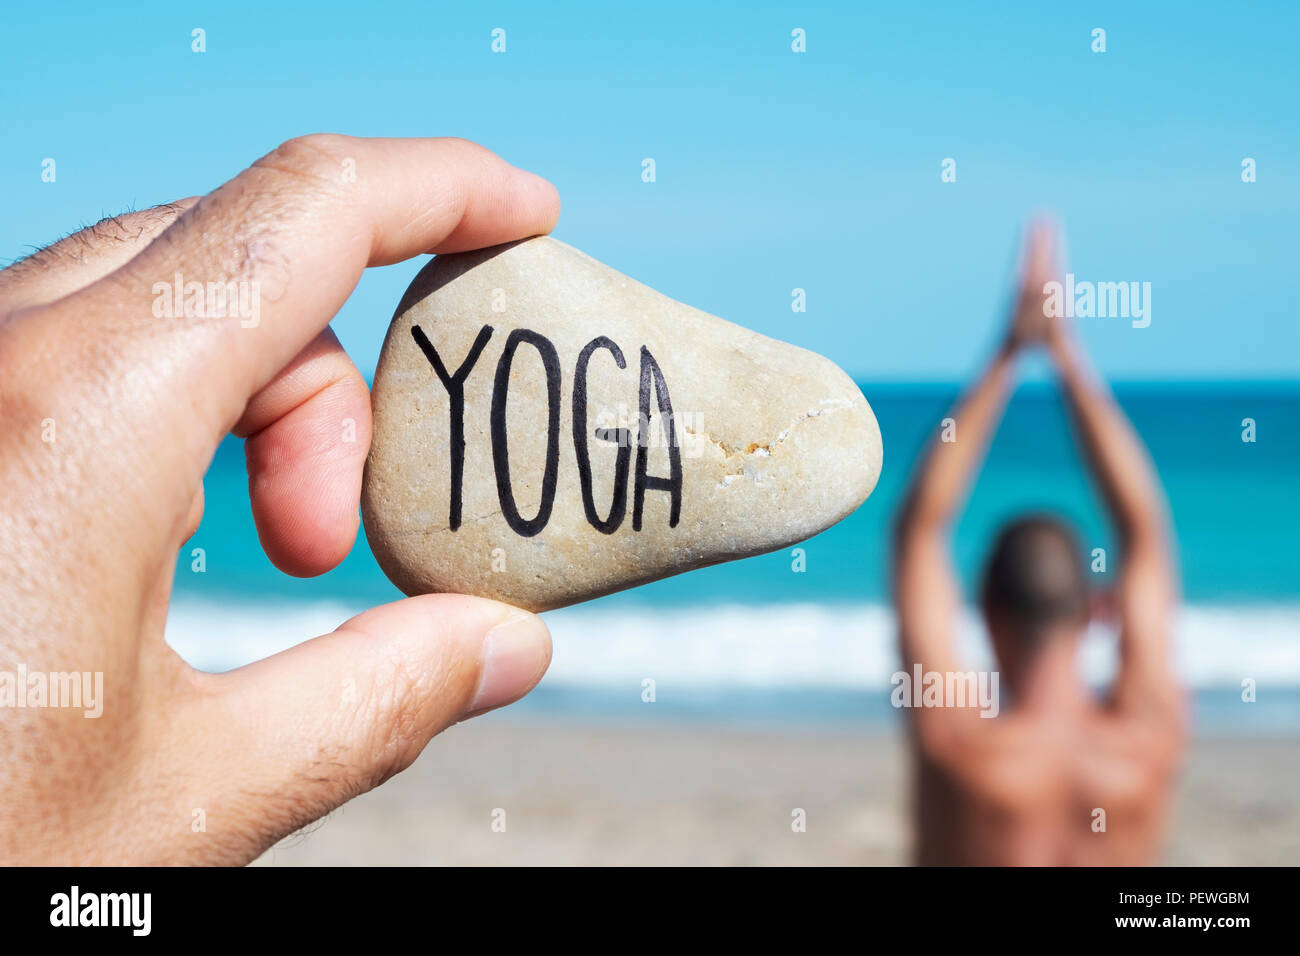 closeup of the hand of a young caucasian man on the beach holding a stone with the yoga written in it, and a young caucasian man practicing yoga in th - Stock Image